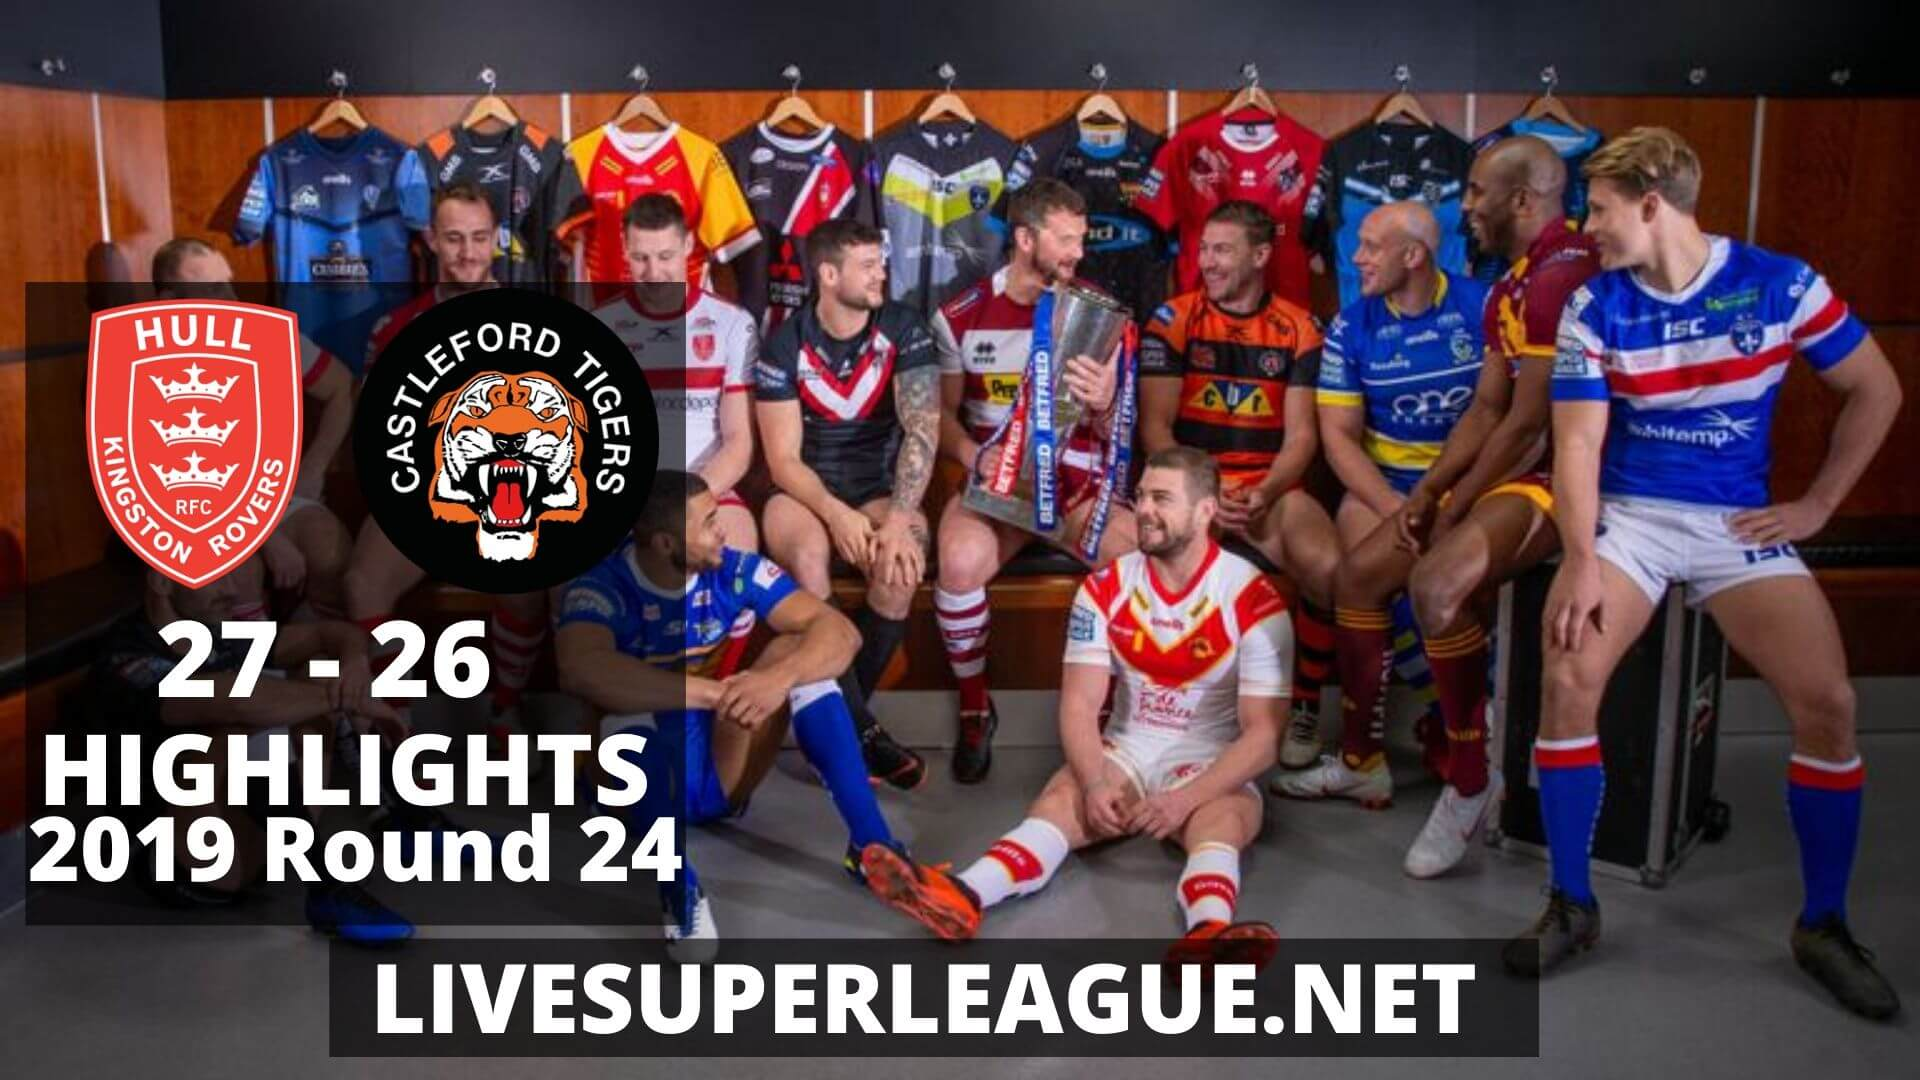 Hull Kingston Rovers Vs Castleford Tigers Highlights 2019 Round 24